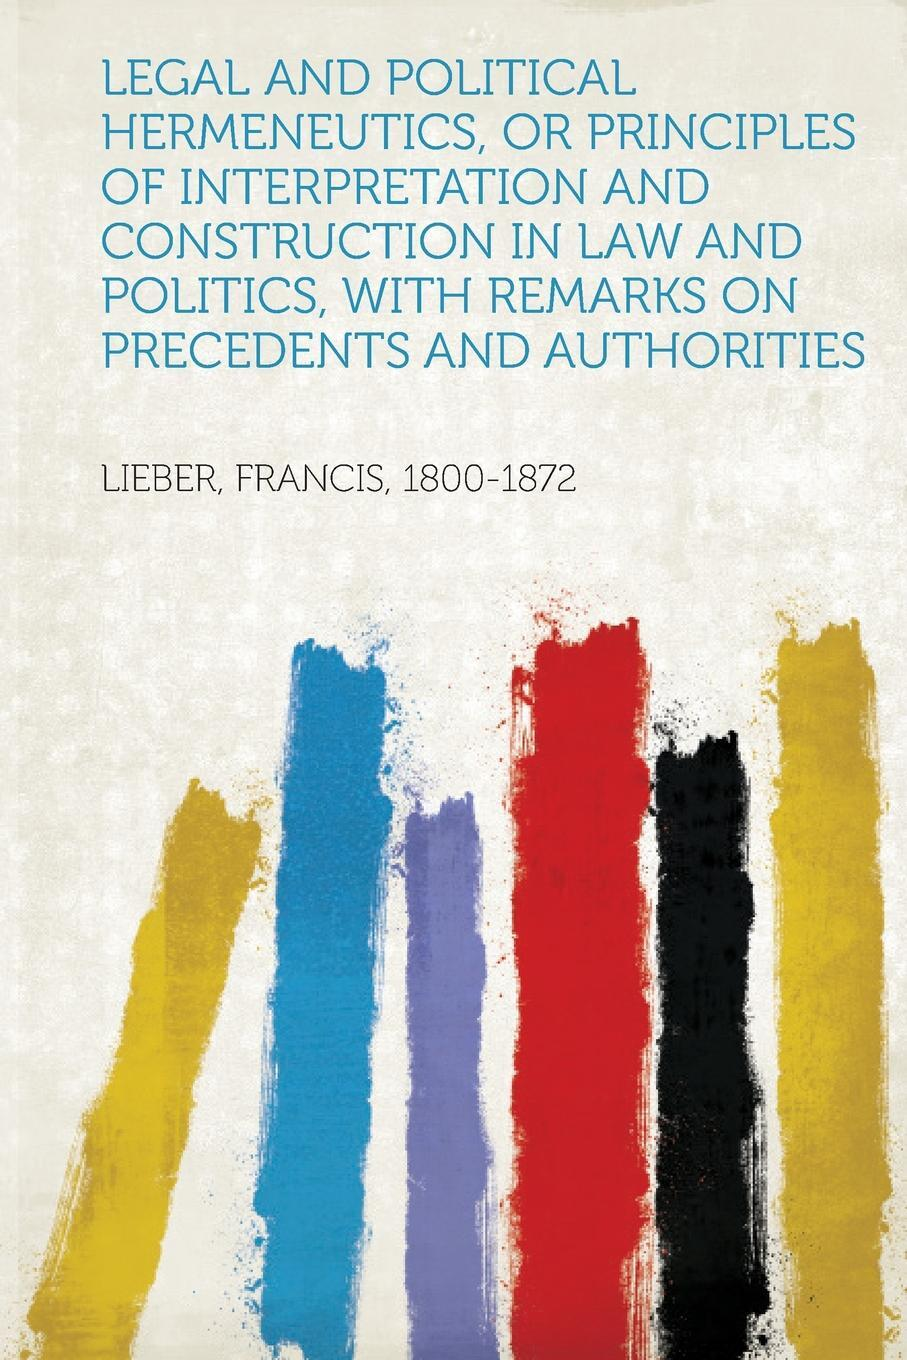 Legal and Political Hermeneutics, or Principles of Interpretation and Construction in Law and Politics, with Remarks on Precedents and Authorities